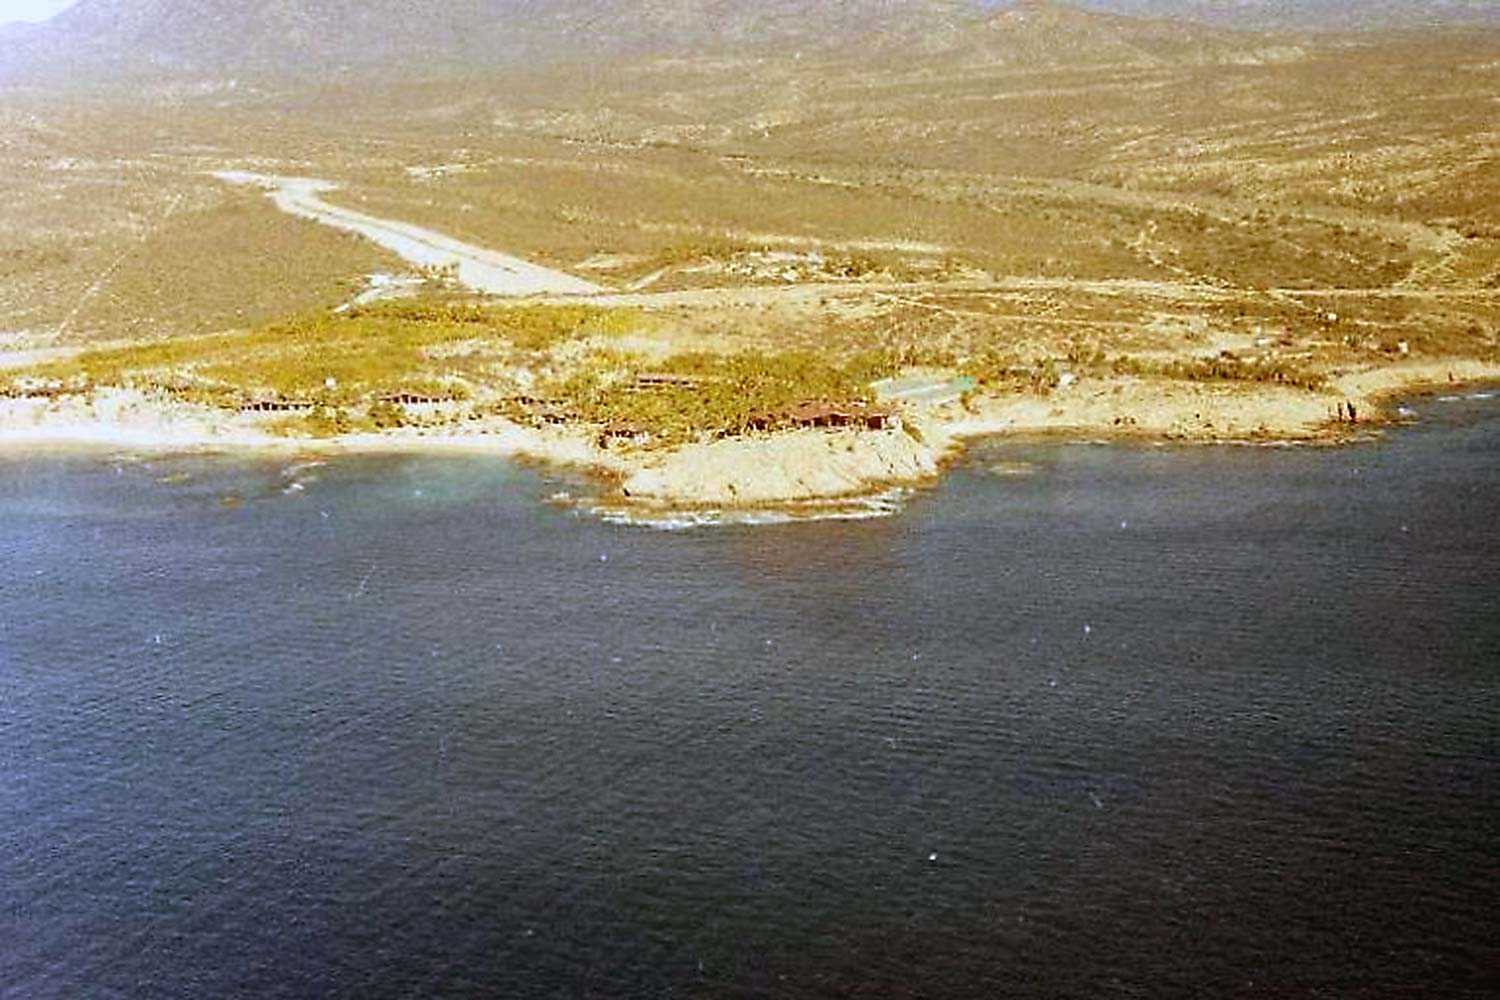 hotel-cabo-san-lucas-2905 ft air-strip-1988-peterman-2